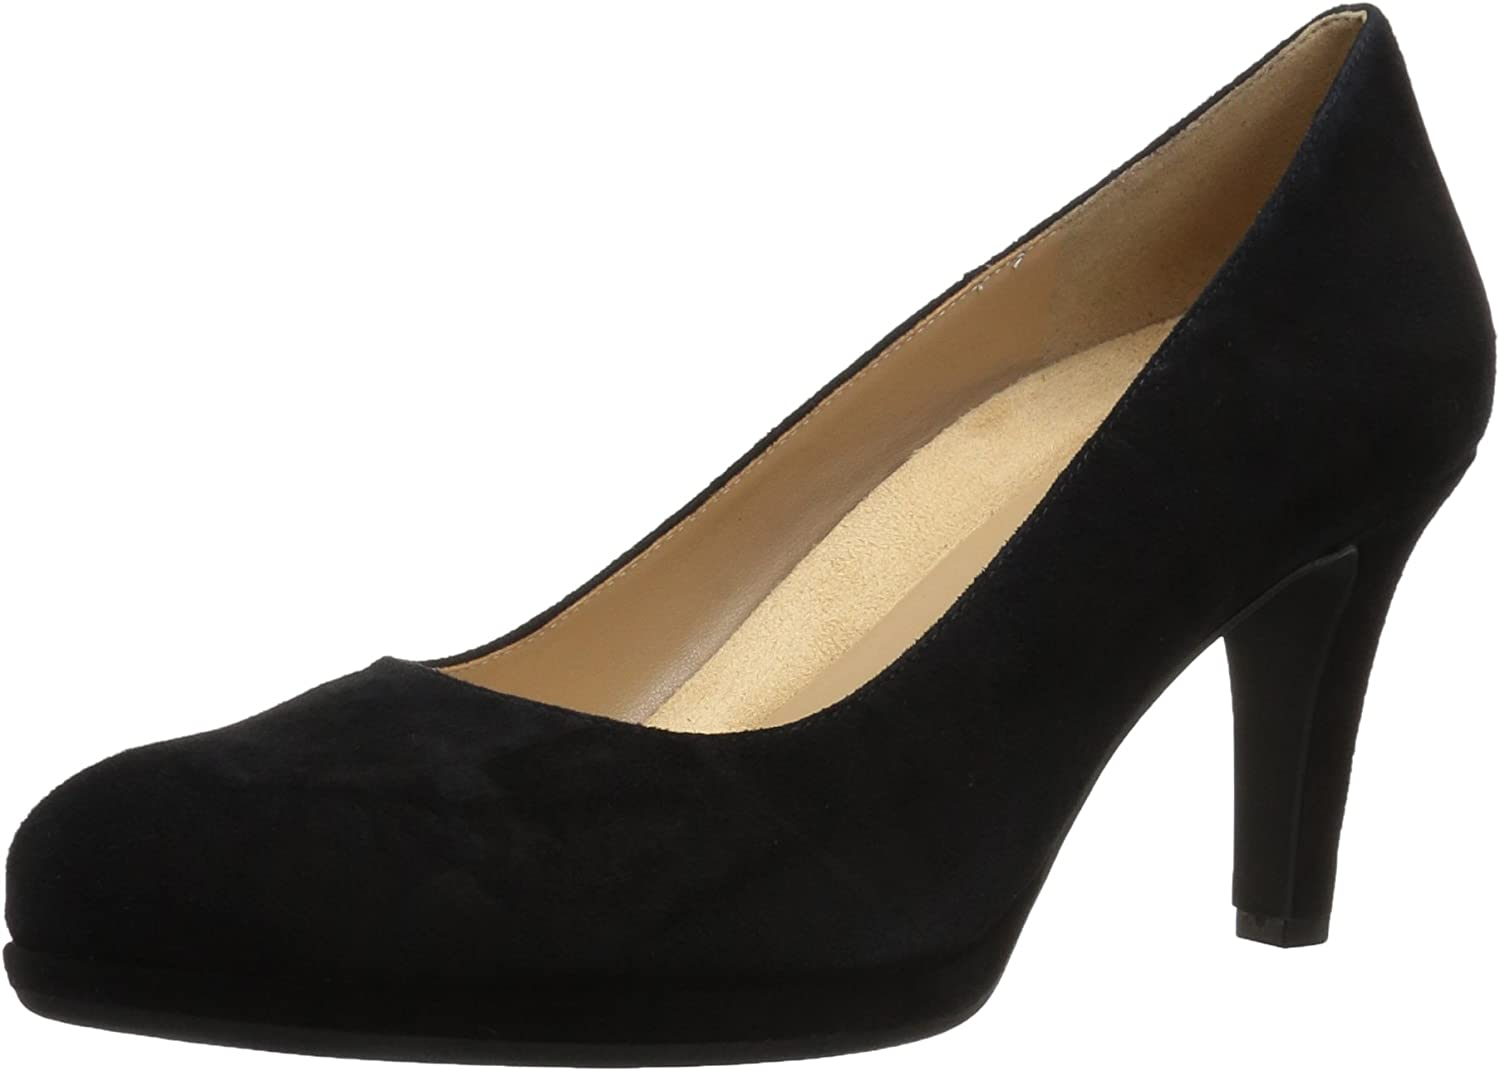 Naturalizer Women's Michelle Dress Pump